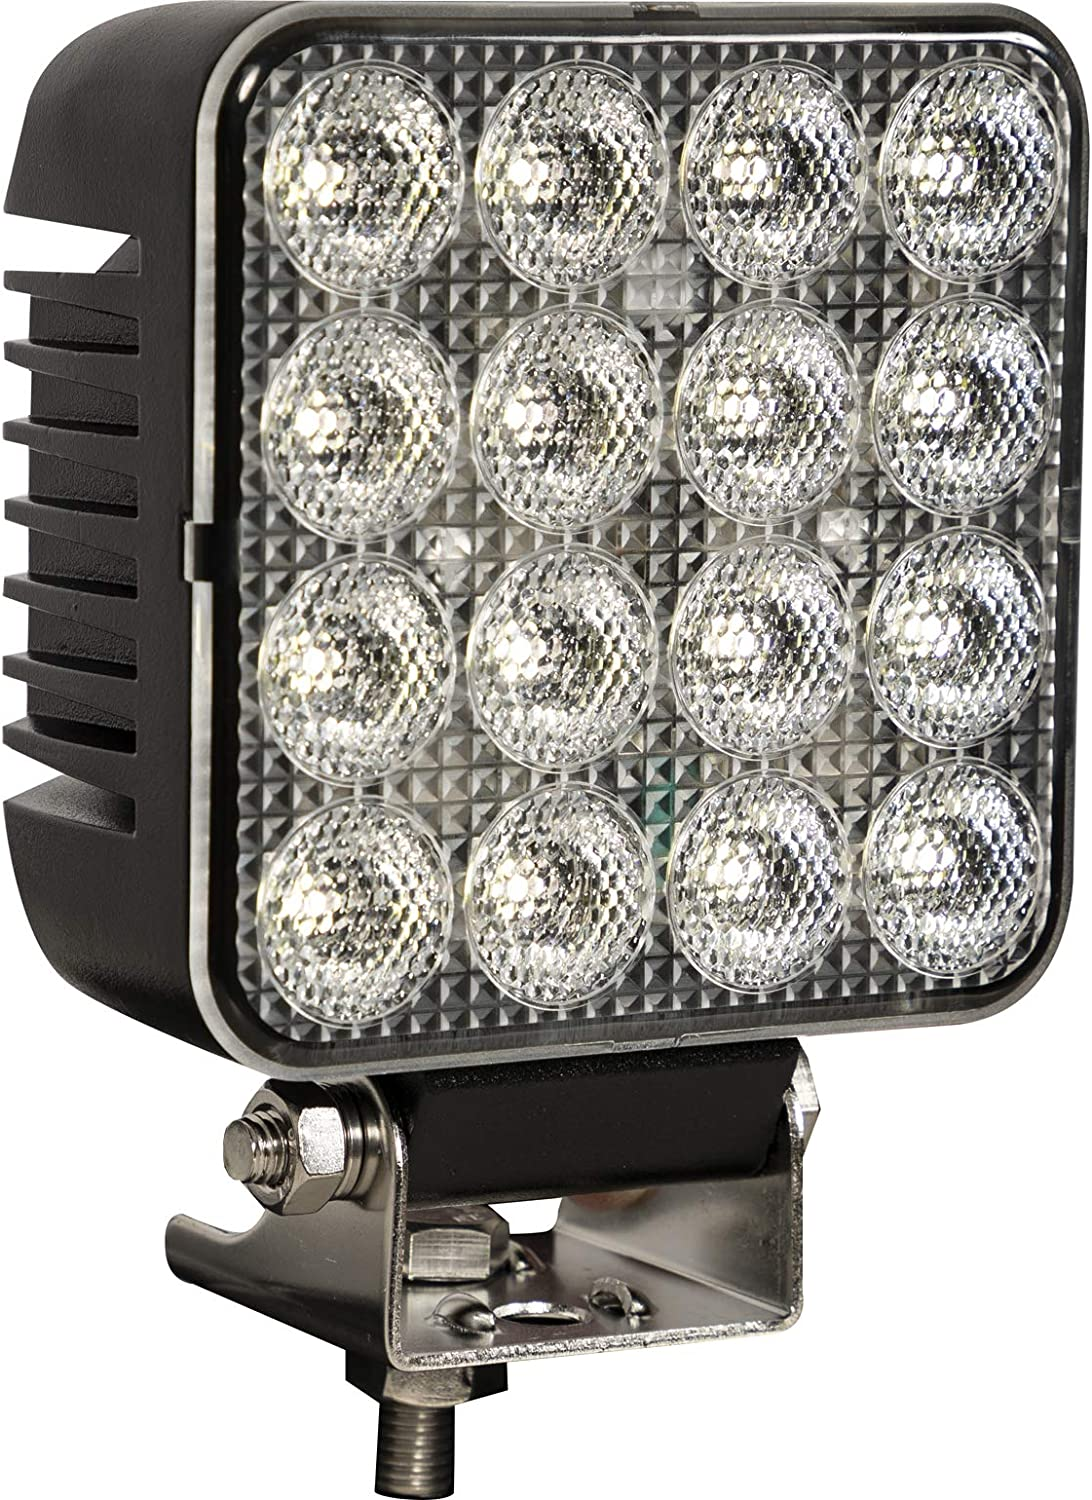 Buyers Products All items in the store 1492230 Ultra Excellence Bright Fl LED Combination 4.5 Inch